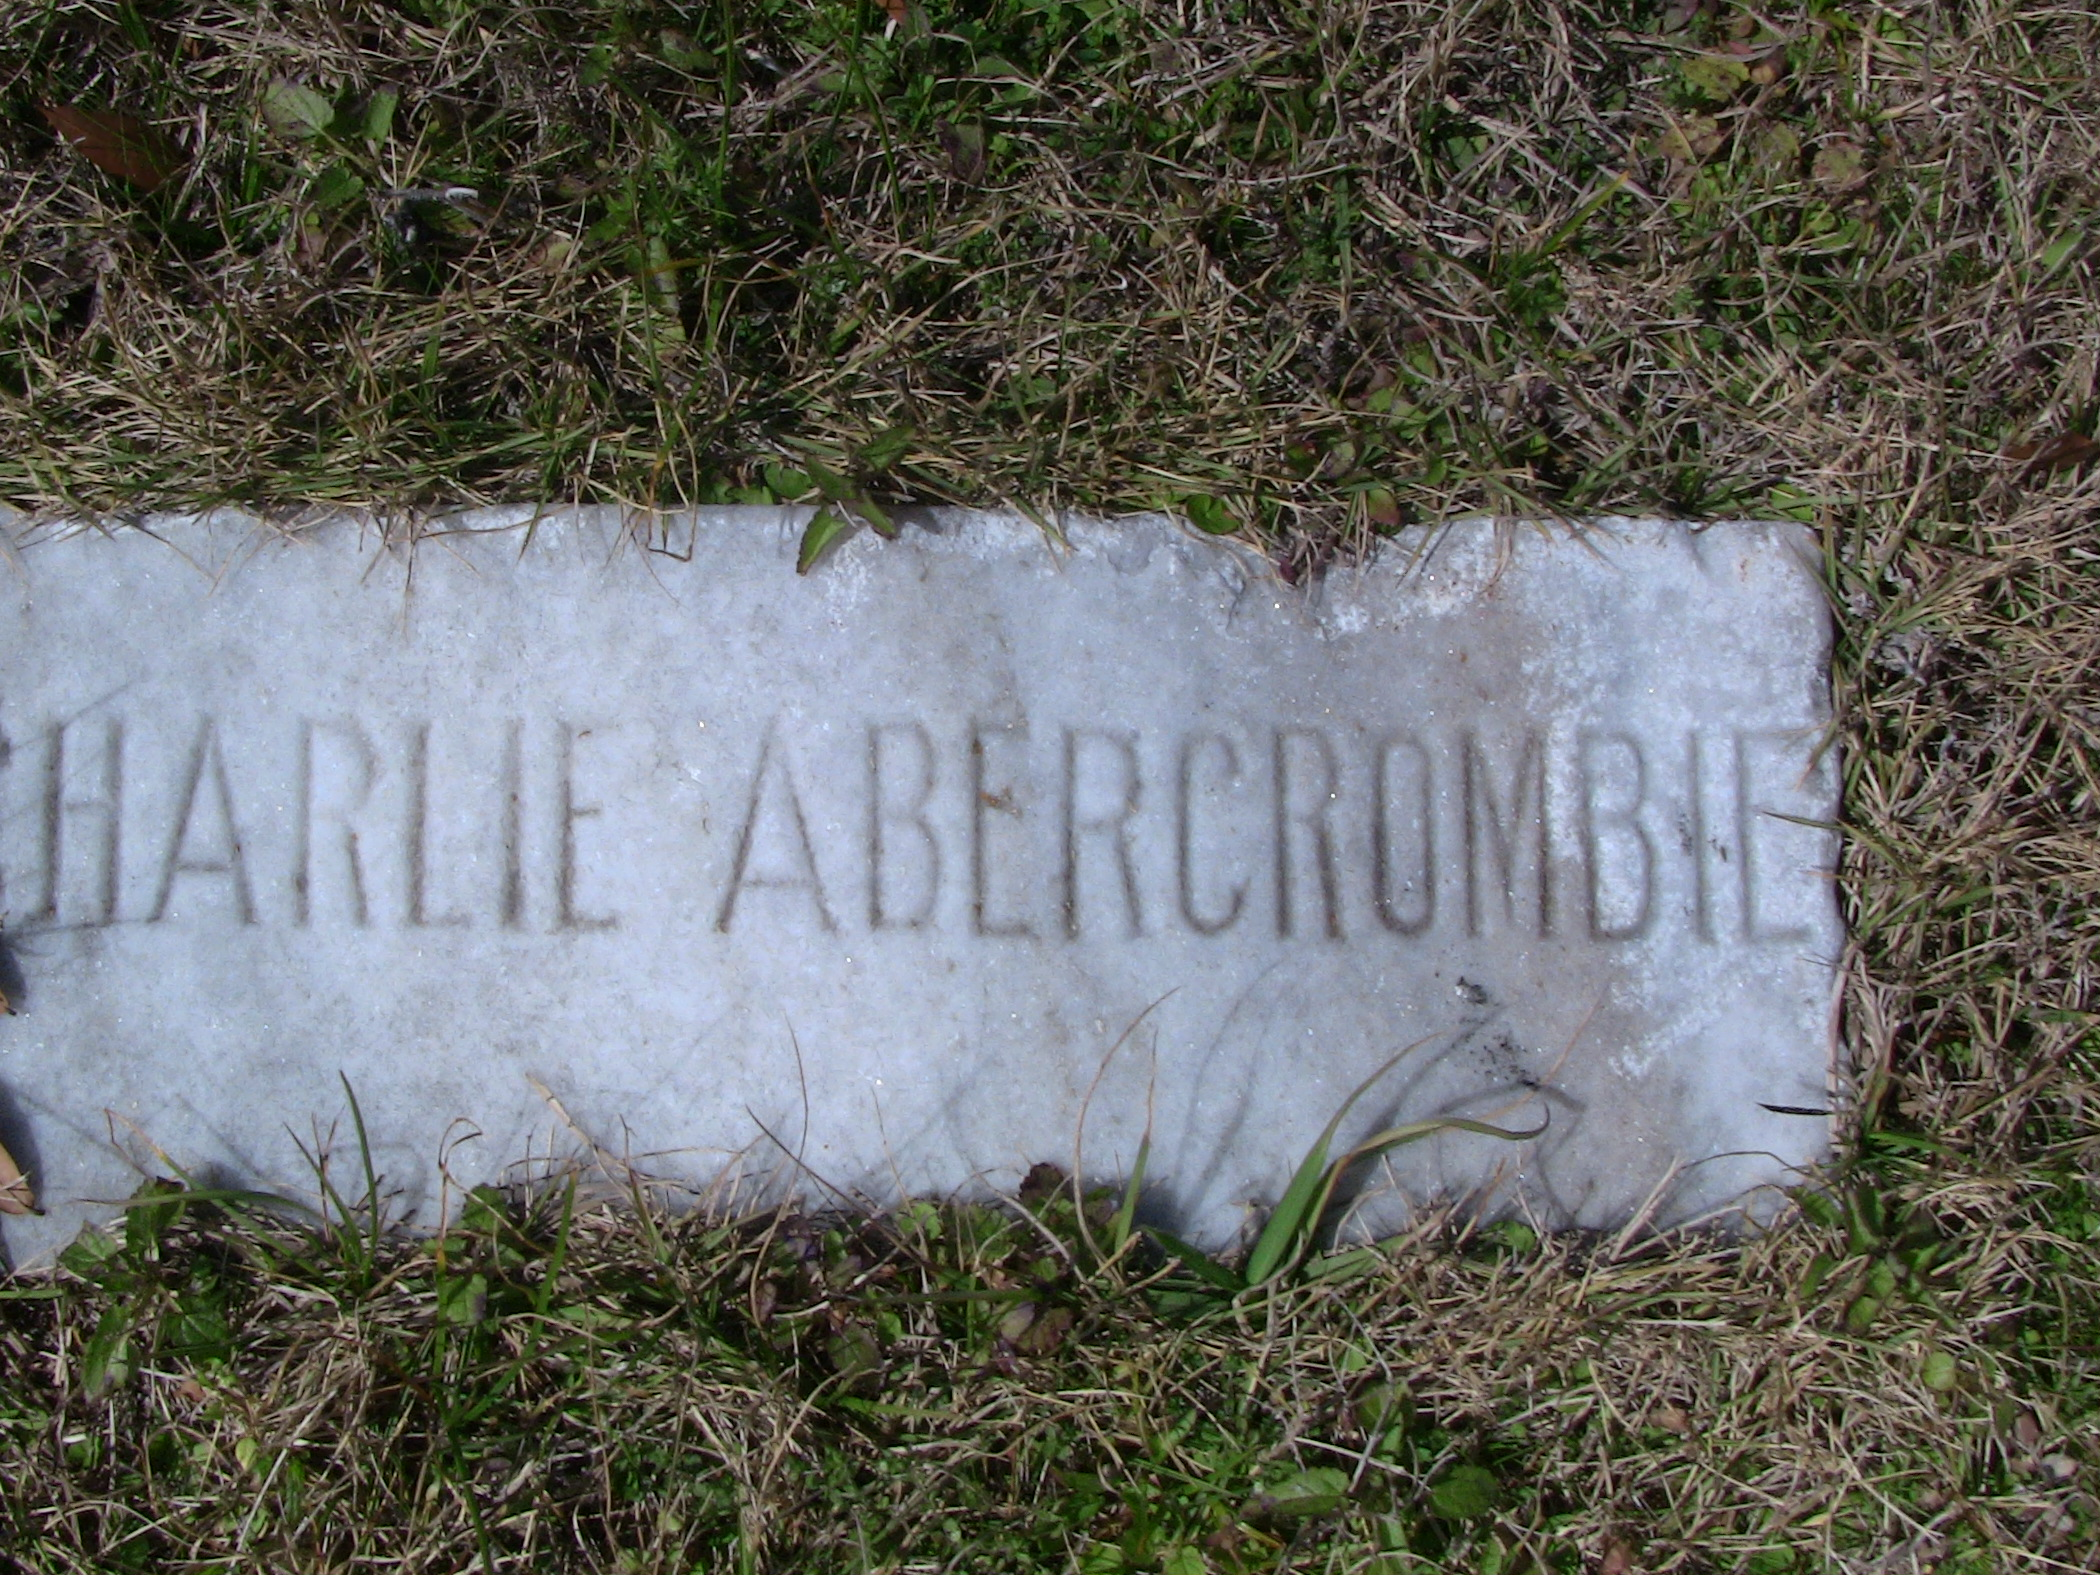 Charlie Abercrombie